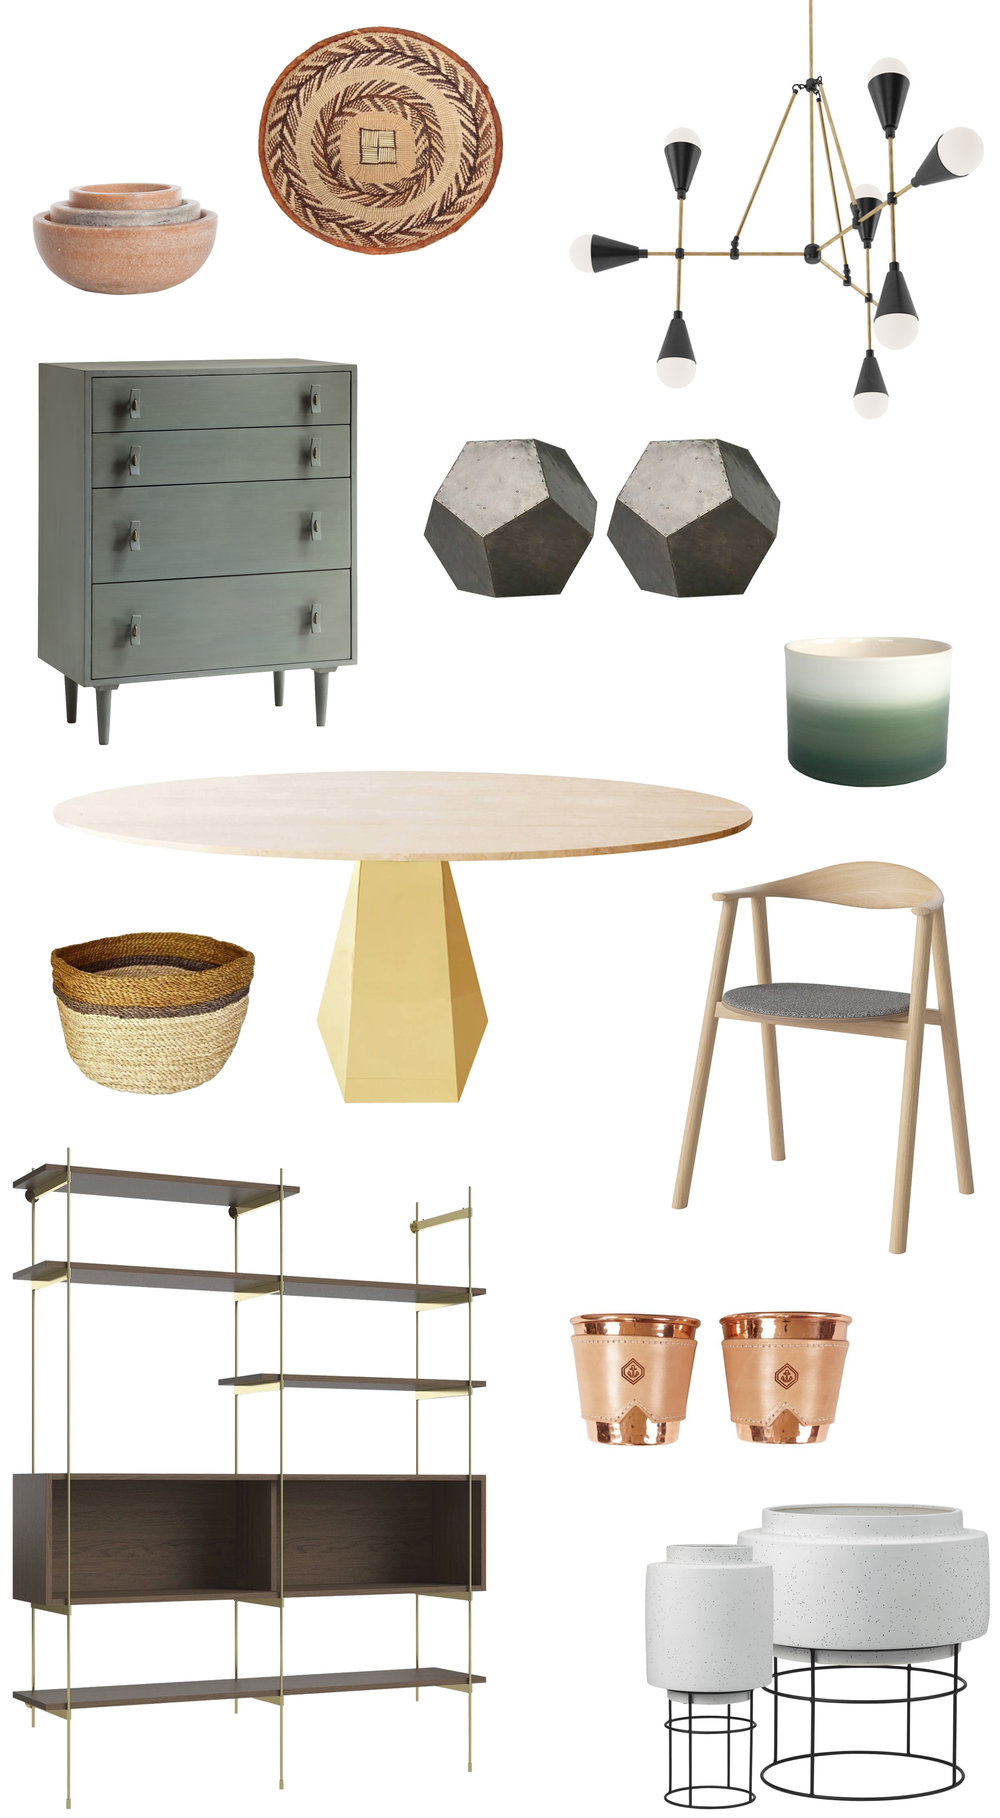 Dining Shop the Look items REVISED.jpg